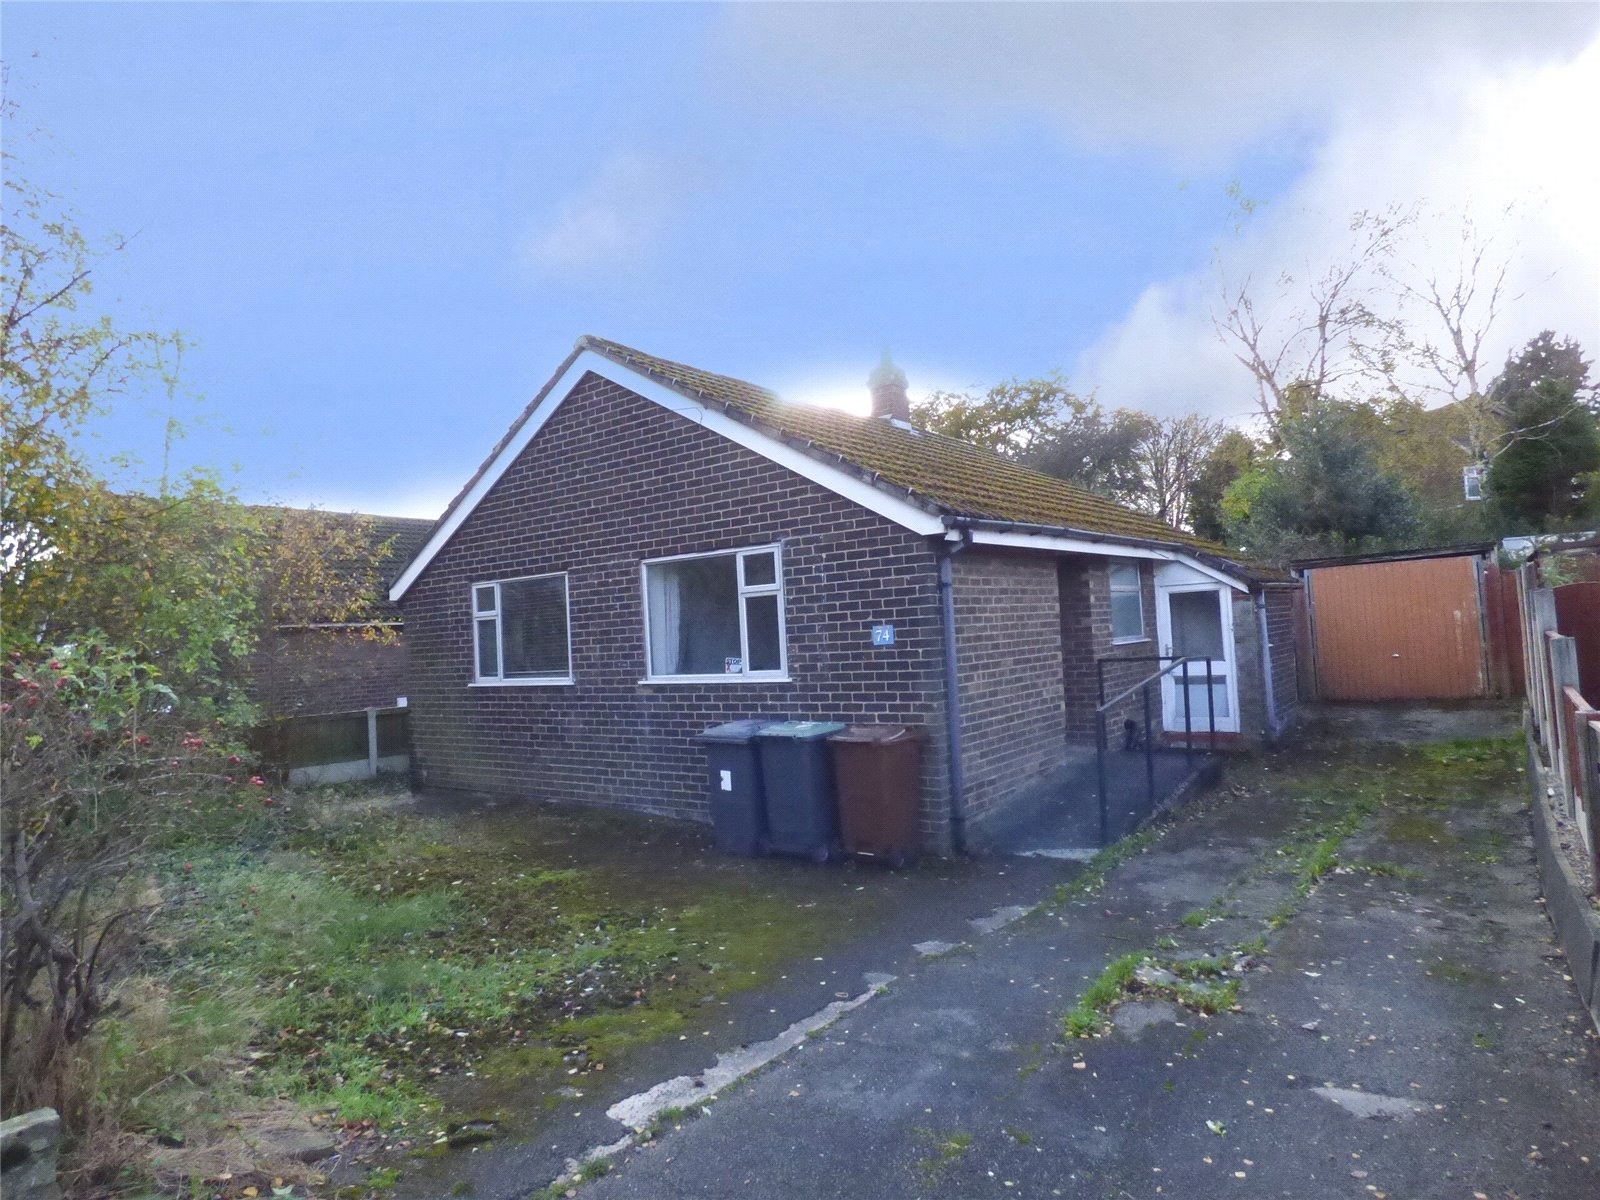 2 Bedrooms Detached Bungalow for sale in Green Lane, Hadfield, Glossop, SK13